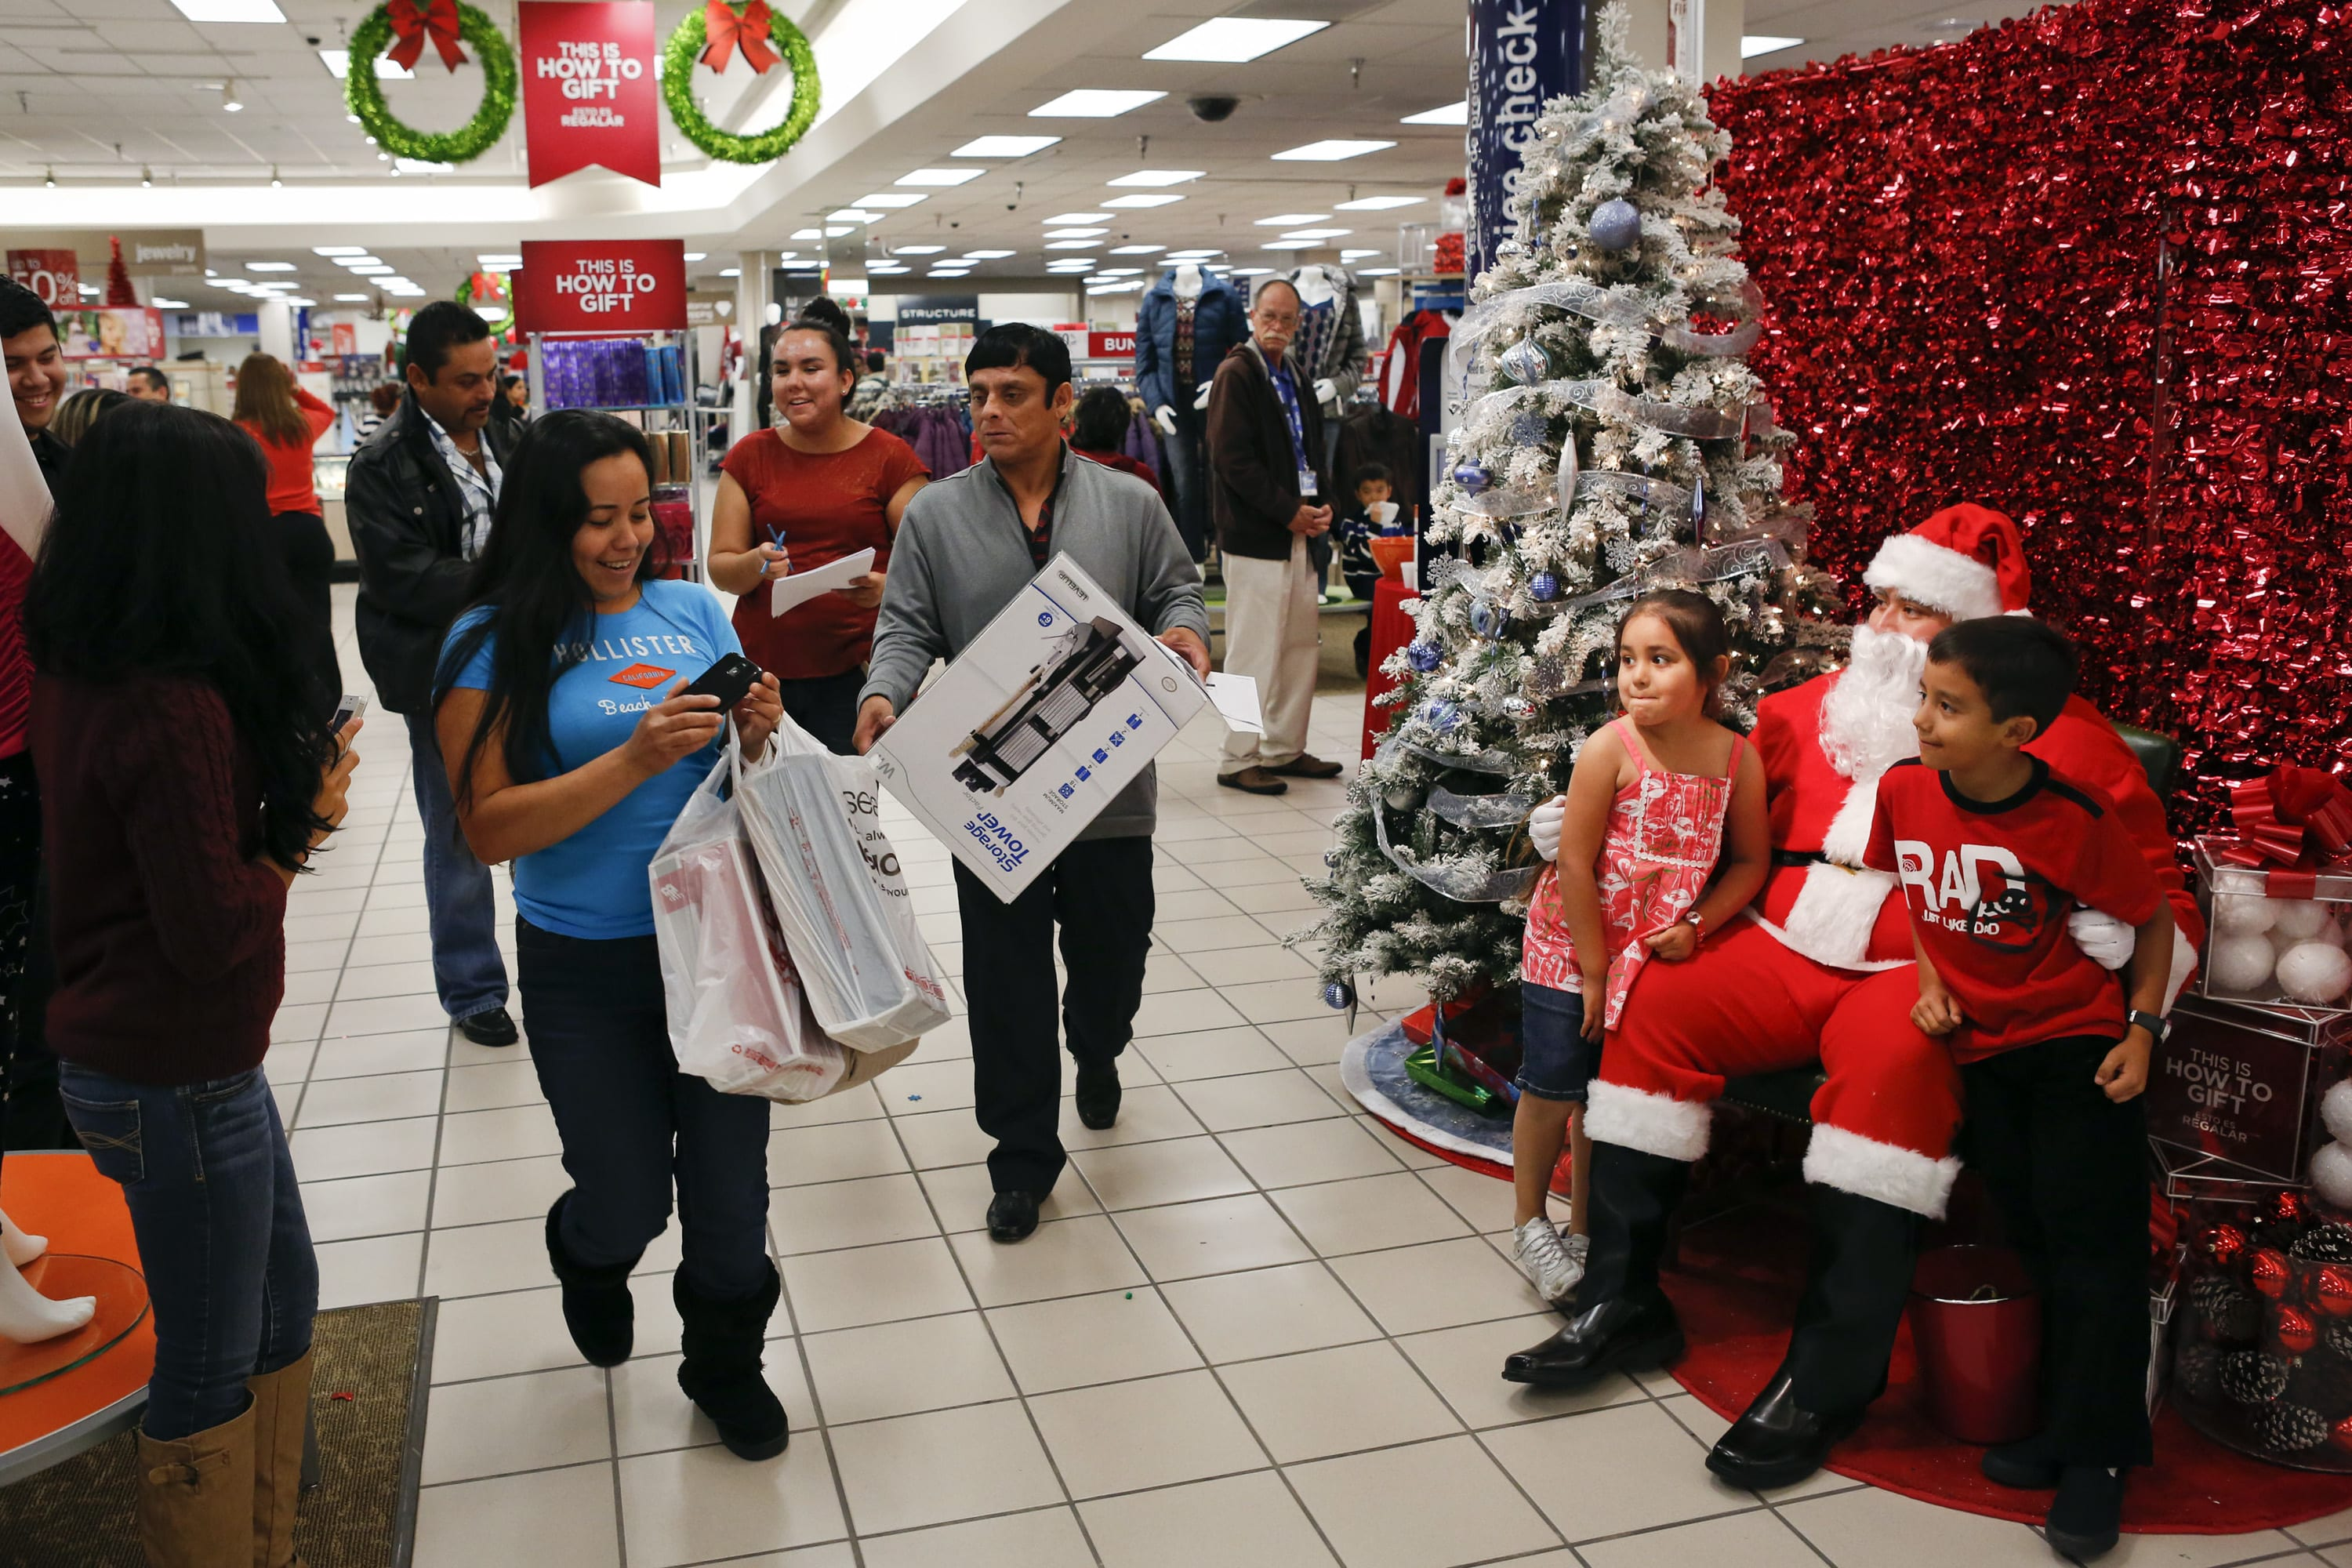 Holiday retail sales could rise 5% despite 'unprecedented uncertainty'